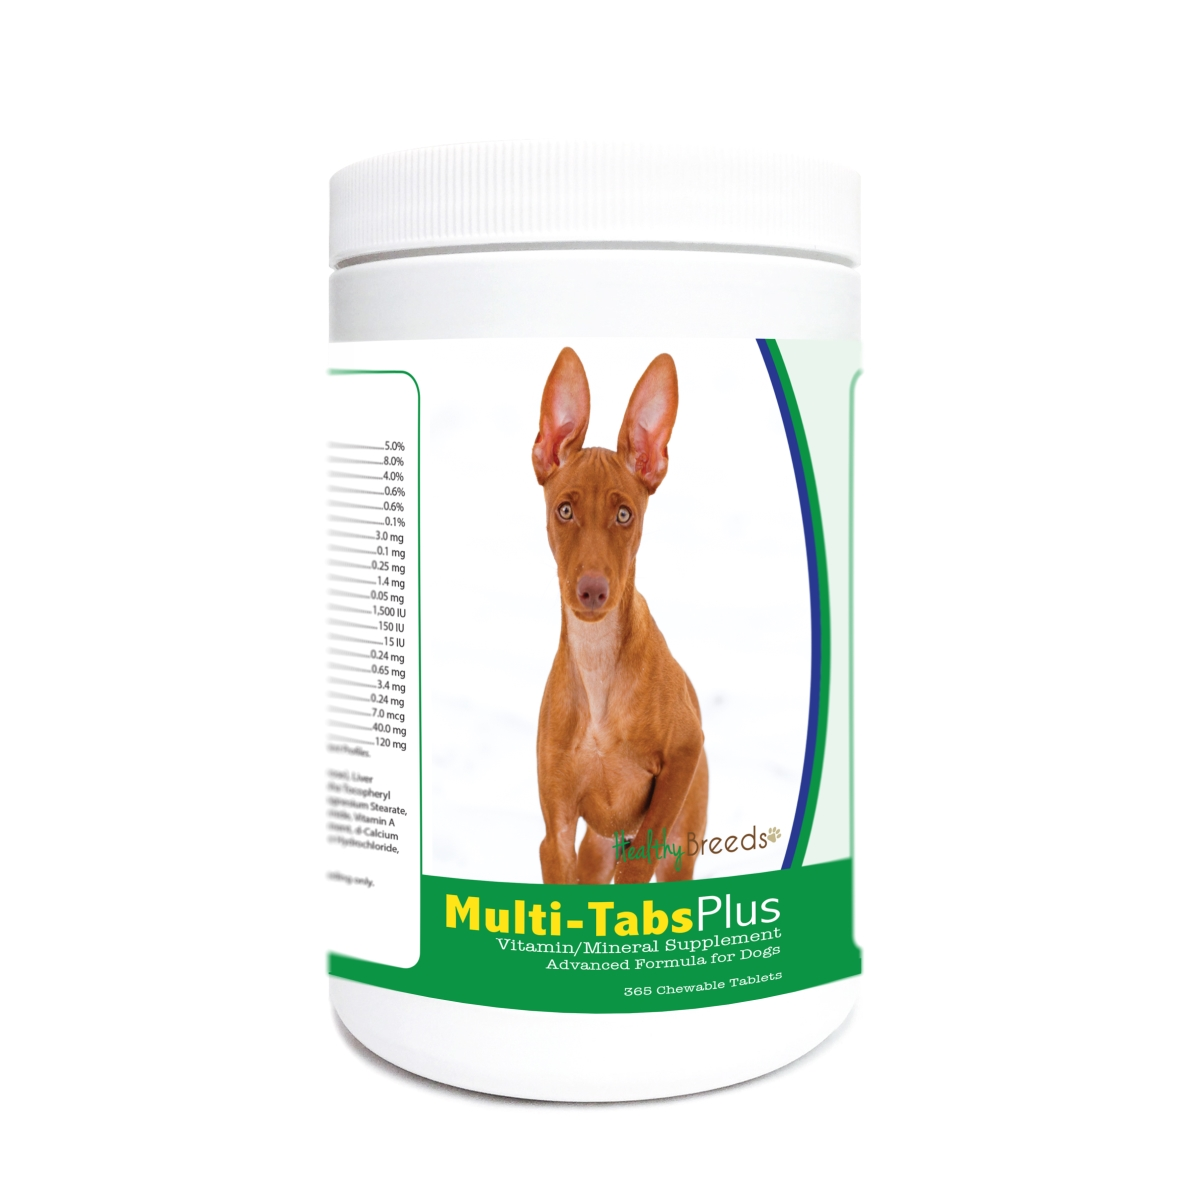 Healthy Breeds 840235178330 Cirneco Dell Etna Multi-Tabs Plus Chewable Tablets - 365 Count